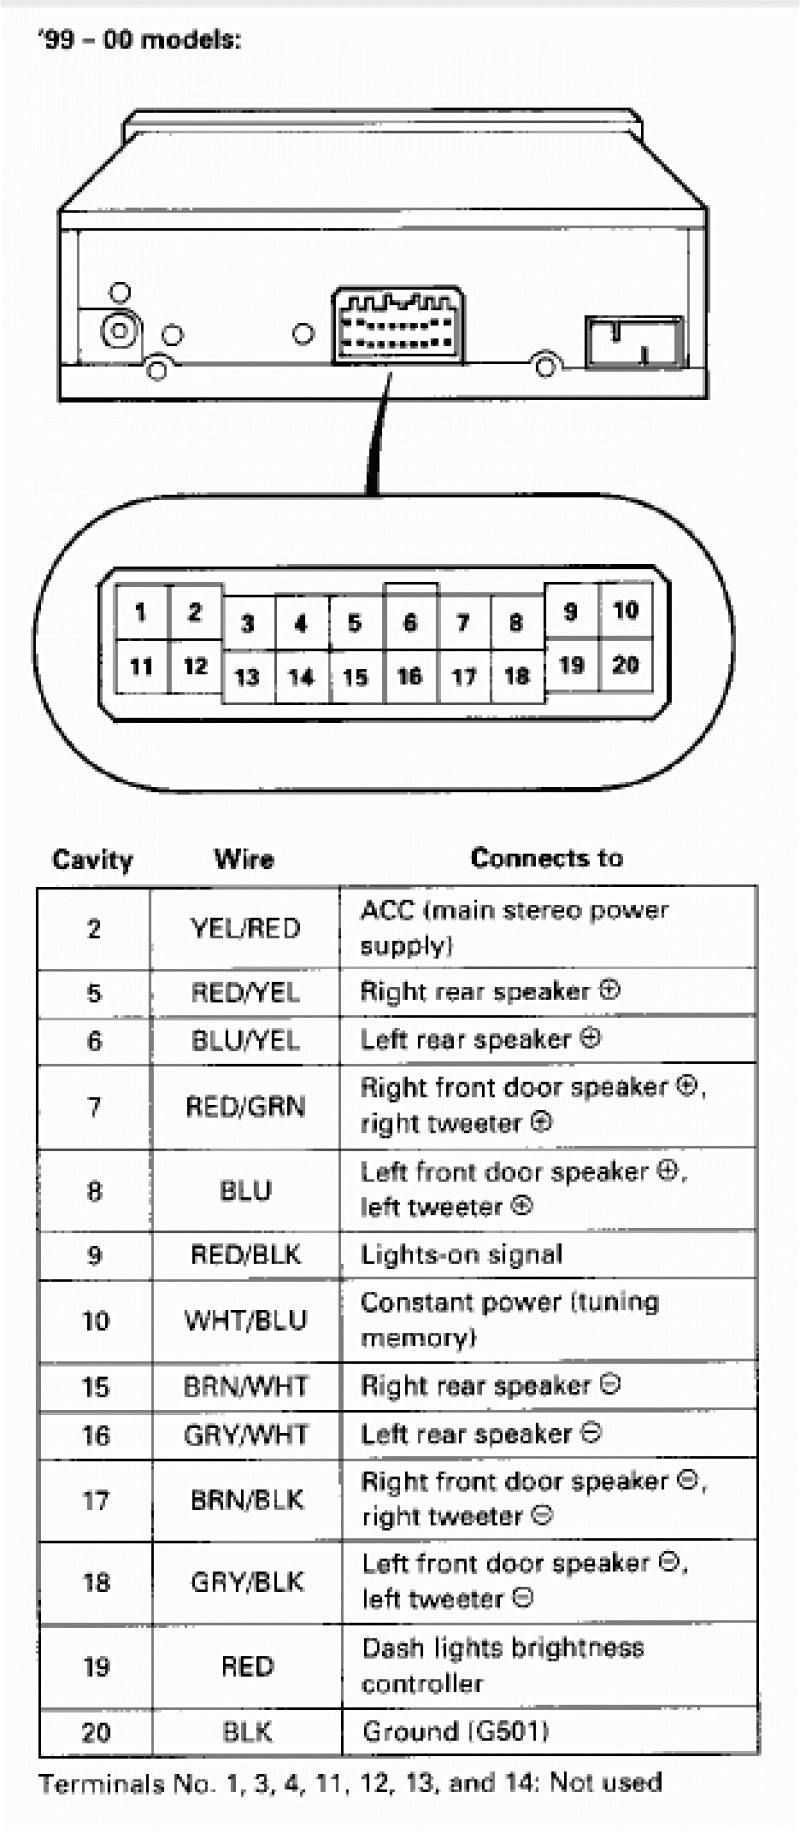 1995-honda-civic-radio-wiring-diagram-sevimliler-and.jpg (800×1833) | civic  car, honda civic car, honda civic  pinterest